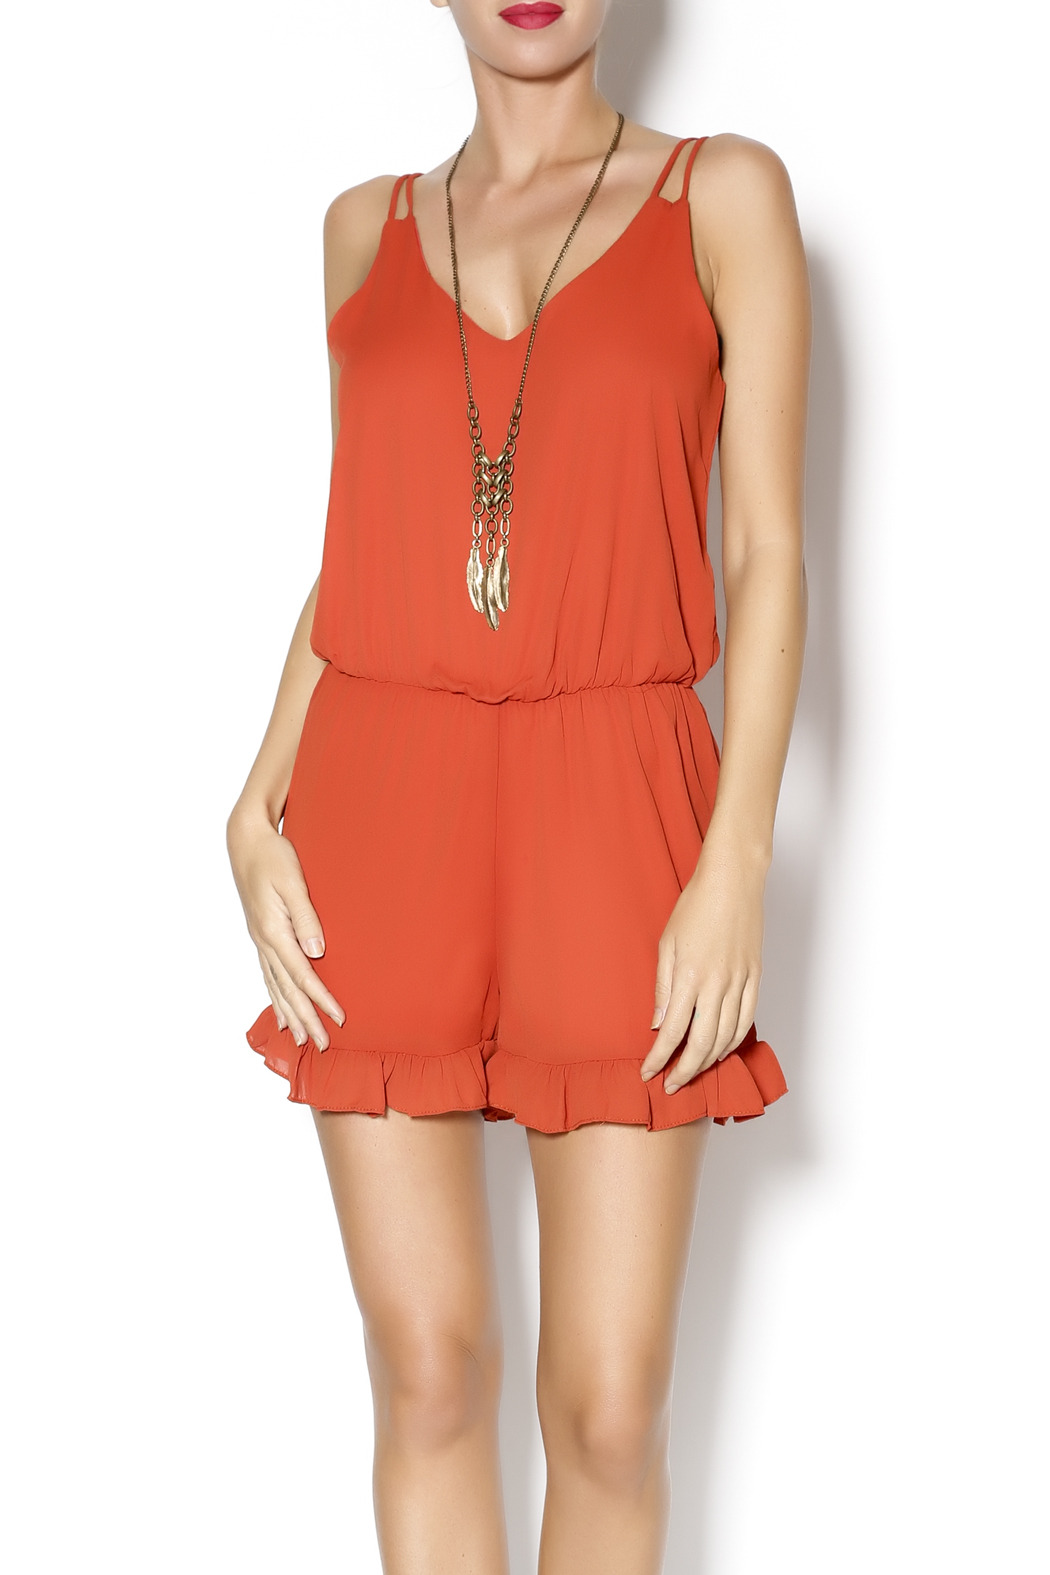 63370a8bdd3a Abby   Taylor Burnt Orange Romper from Florida — Shoptiques